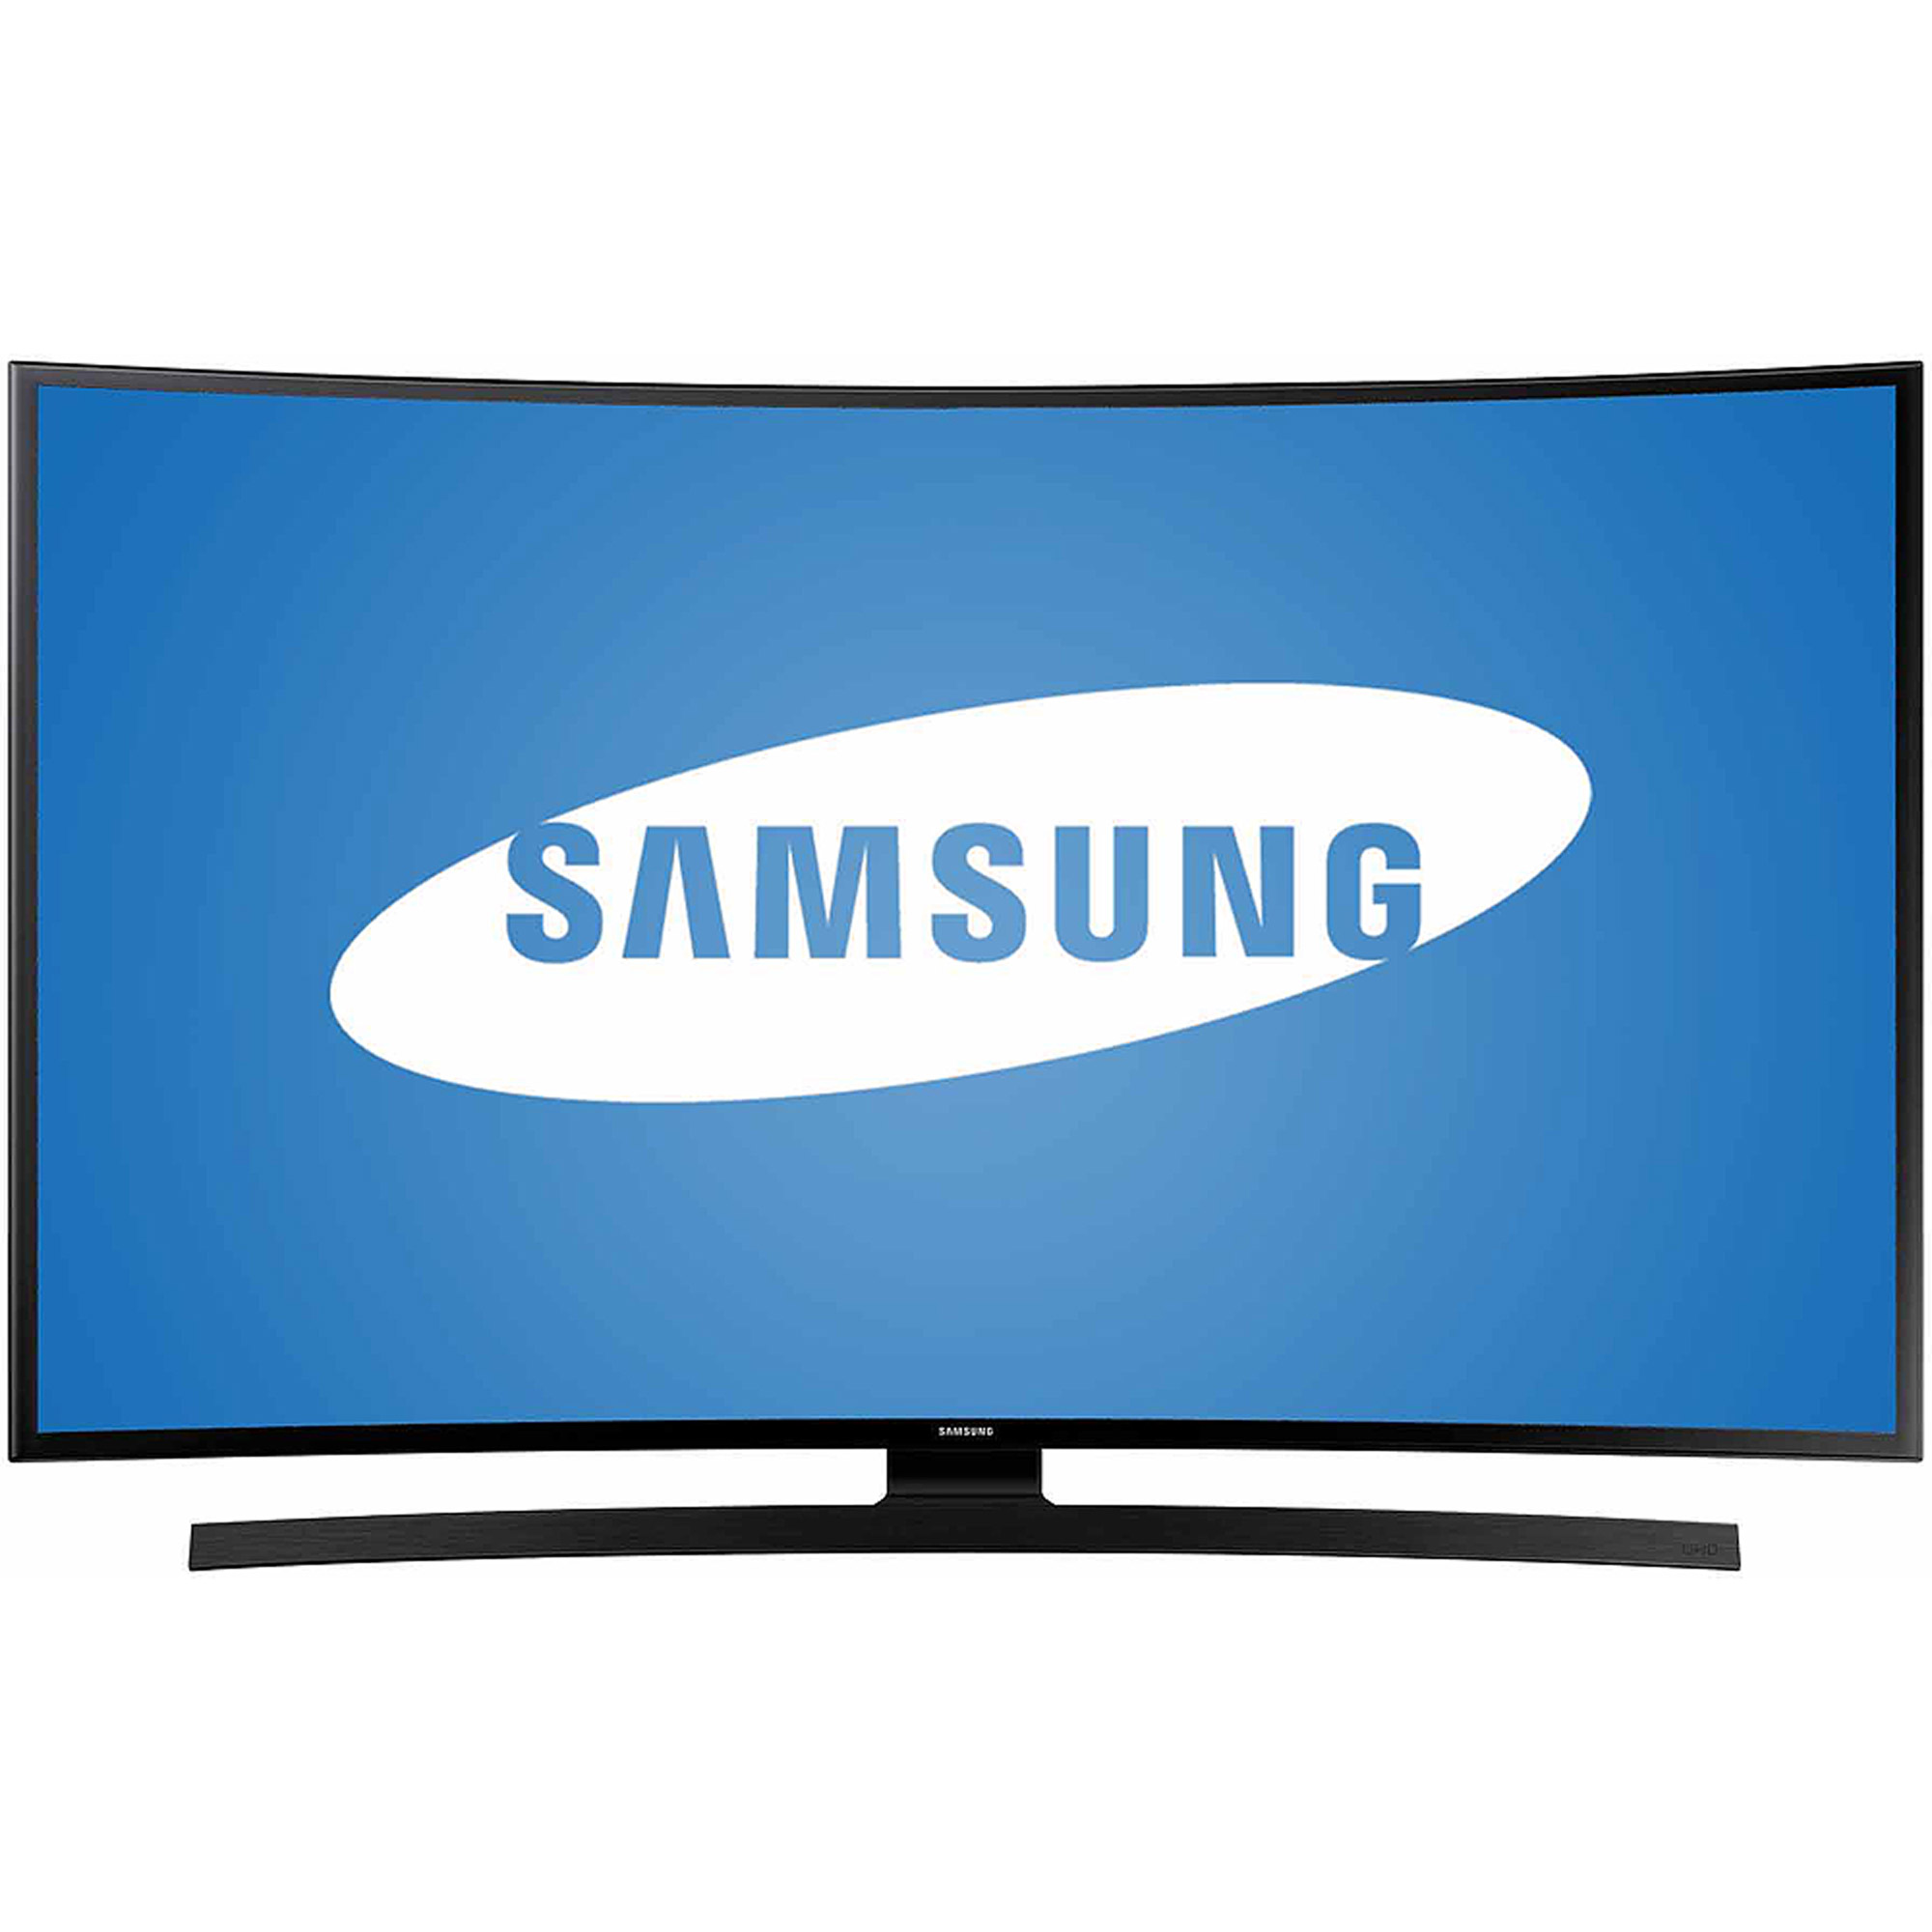 "SAMSUNG 55"" 6700 Series - Curved 4K Ultra HD Smart LED TV - 2160p, 120MR (Model#: UN55JU6700)"